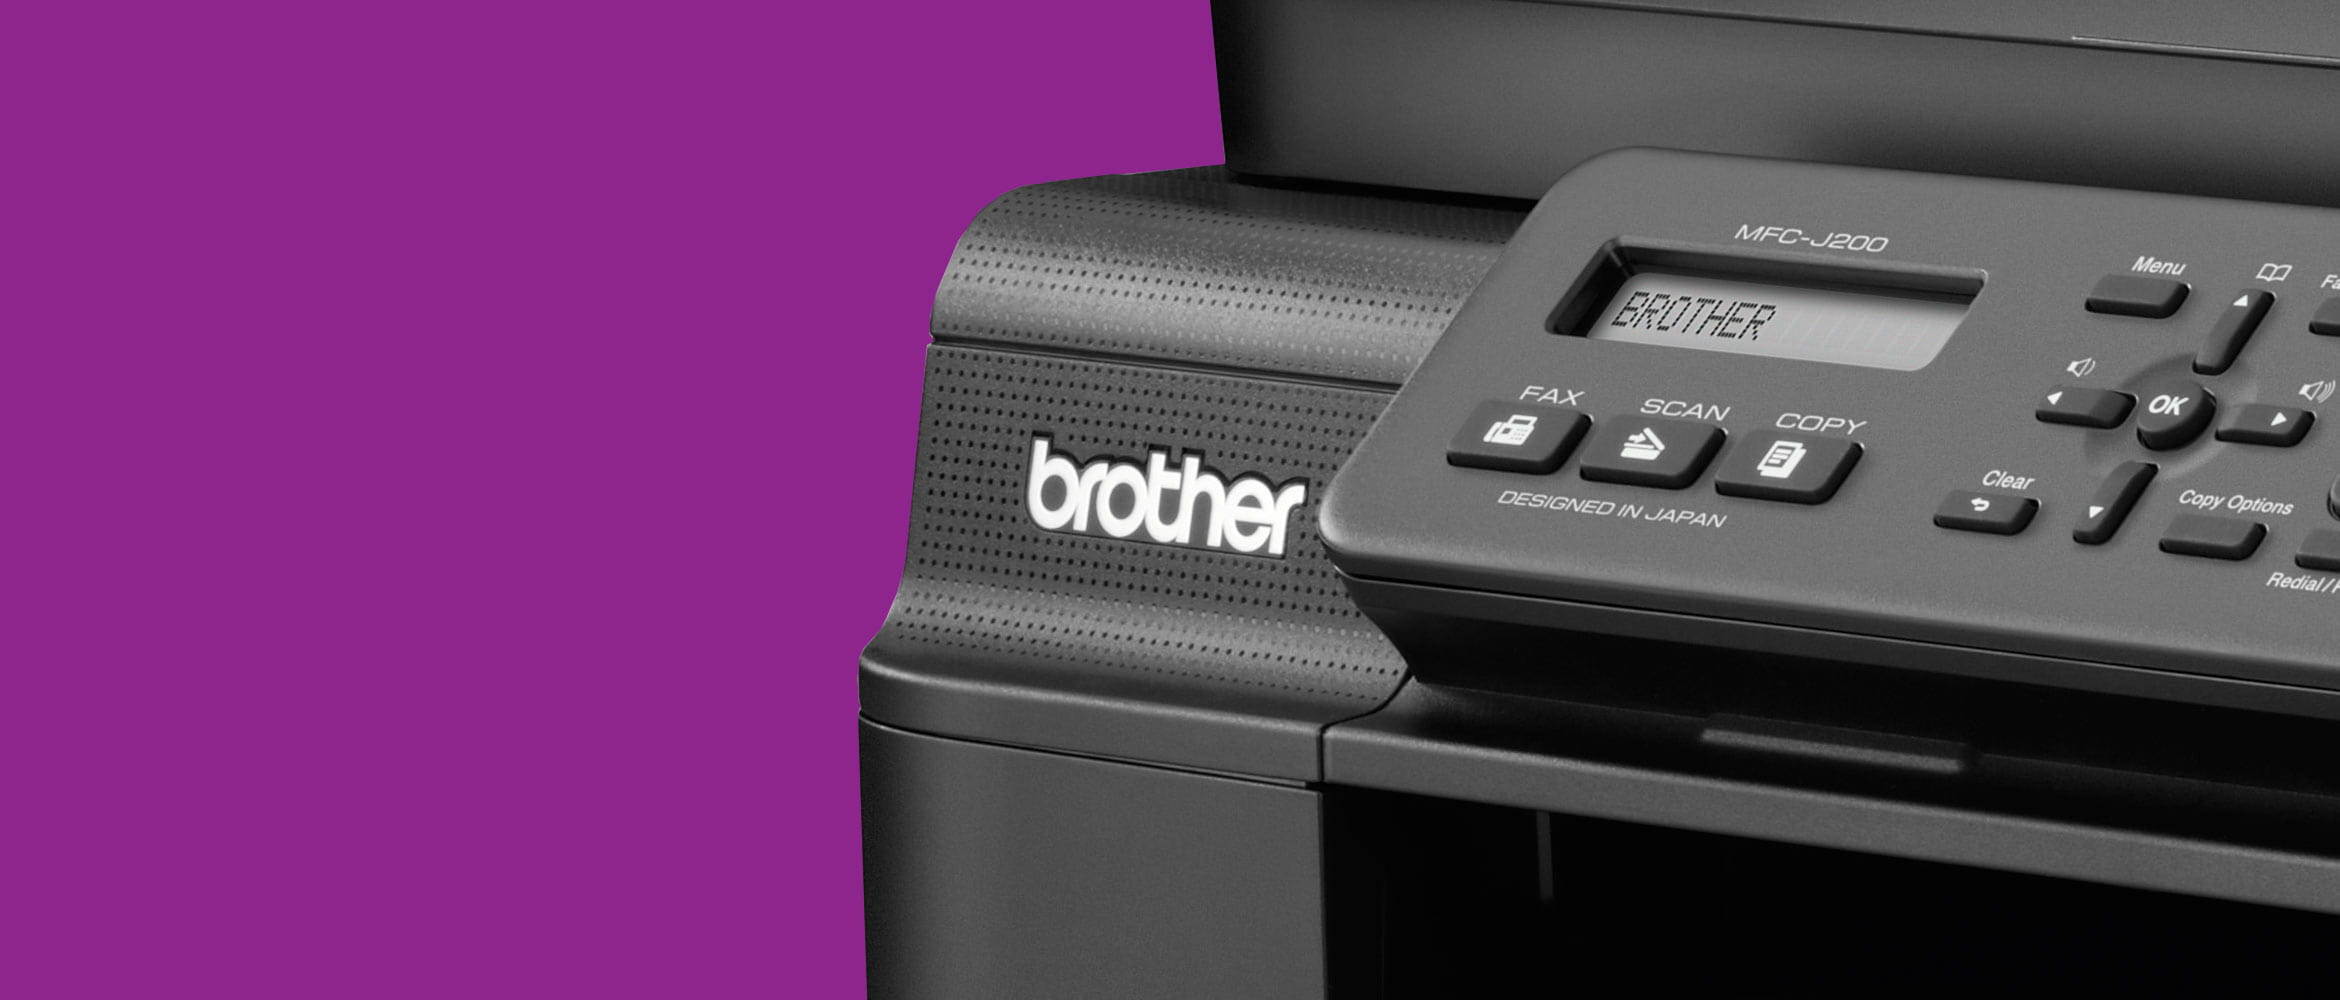 Brother-Inkjet-Printer-with-fax-Fullbanner-image